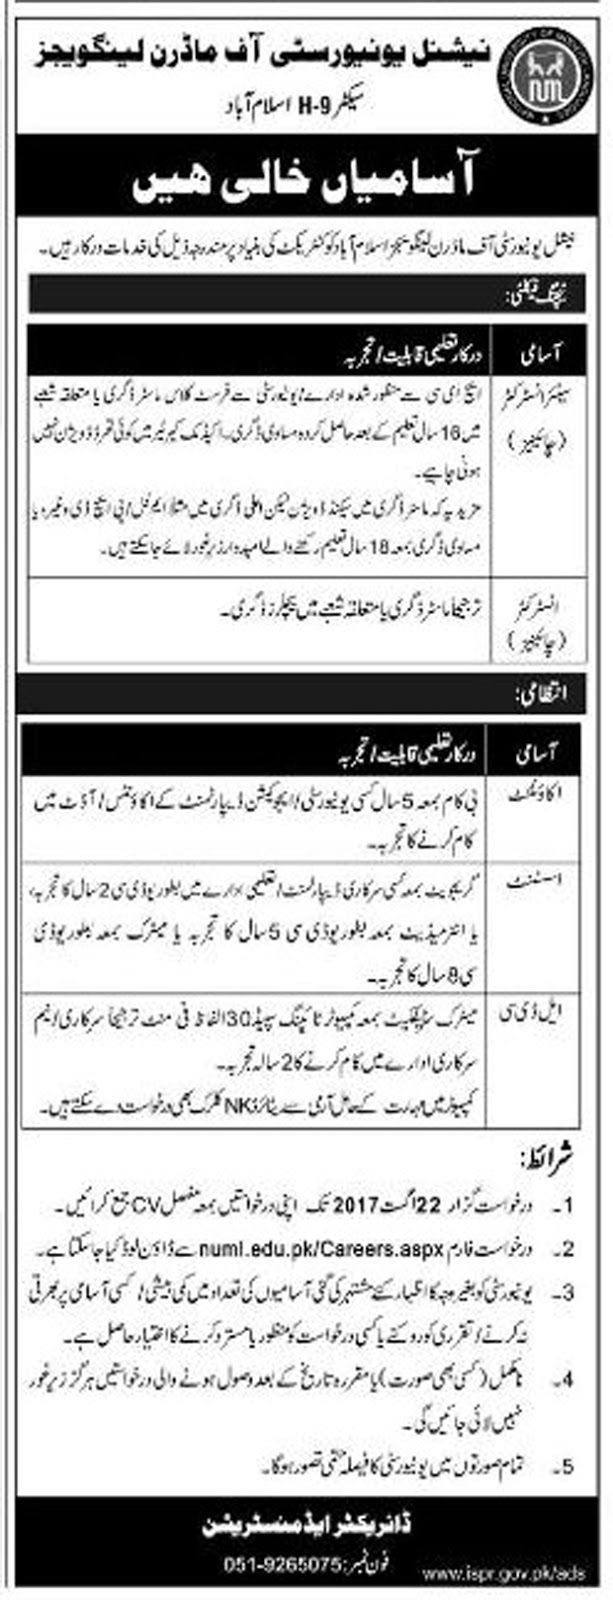 Jobs In National University Of Modern Languages Islamabad August 2017